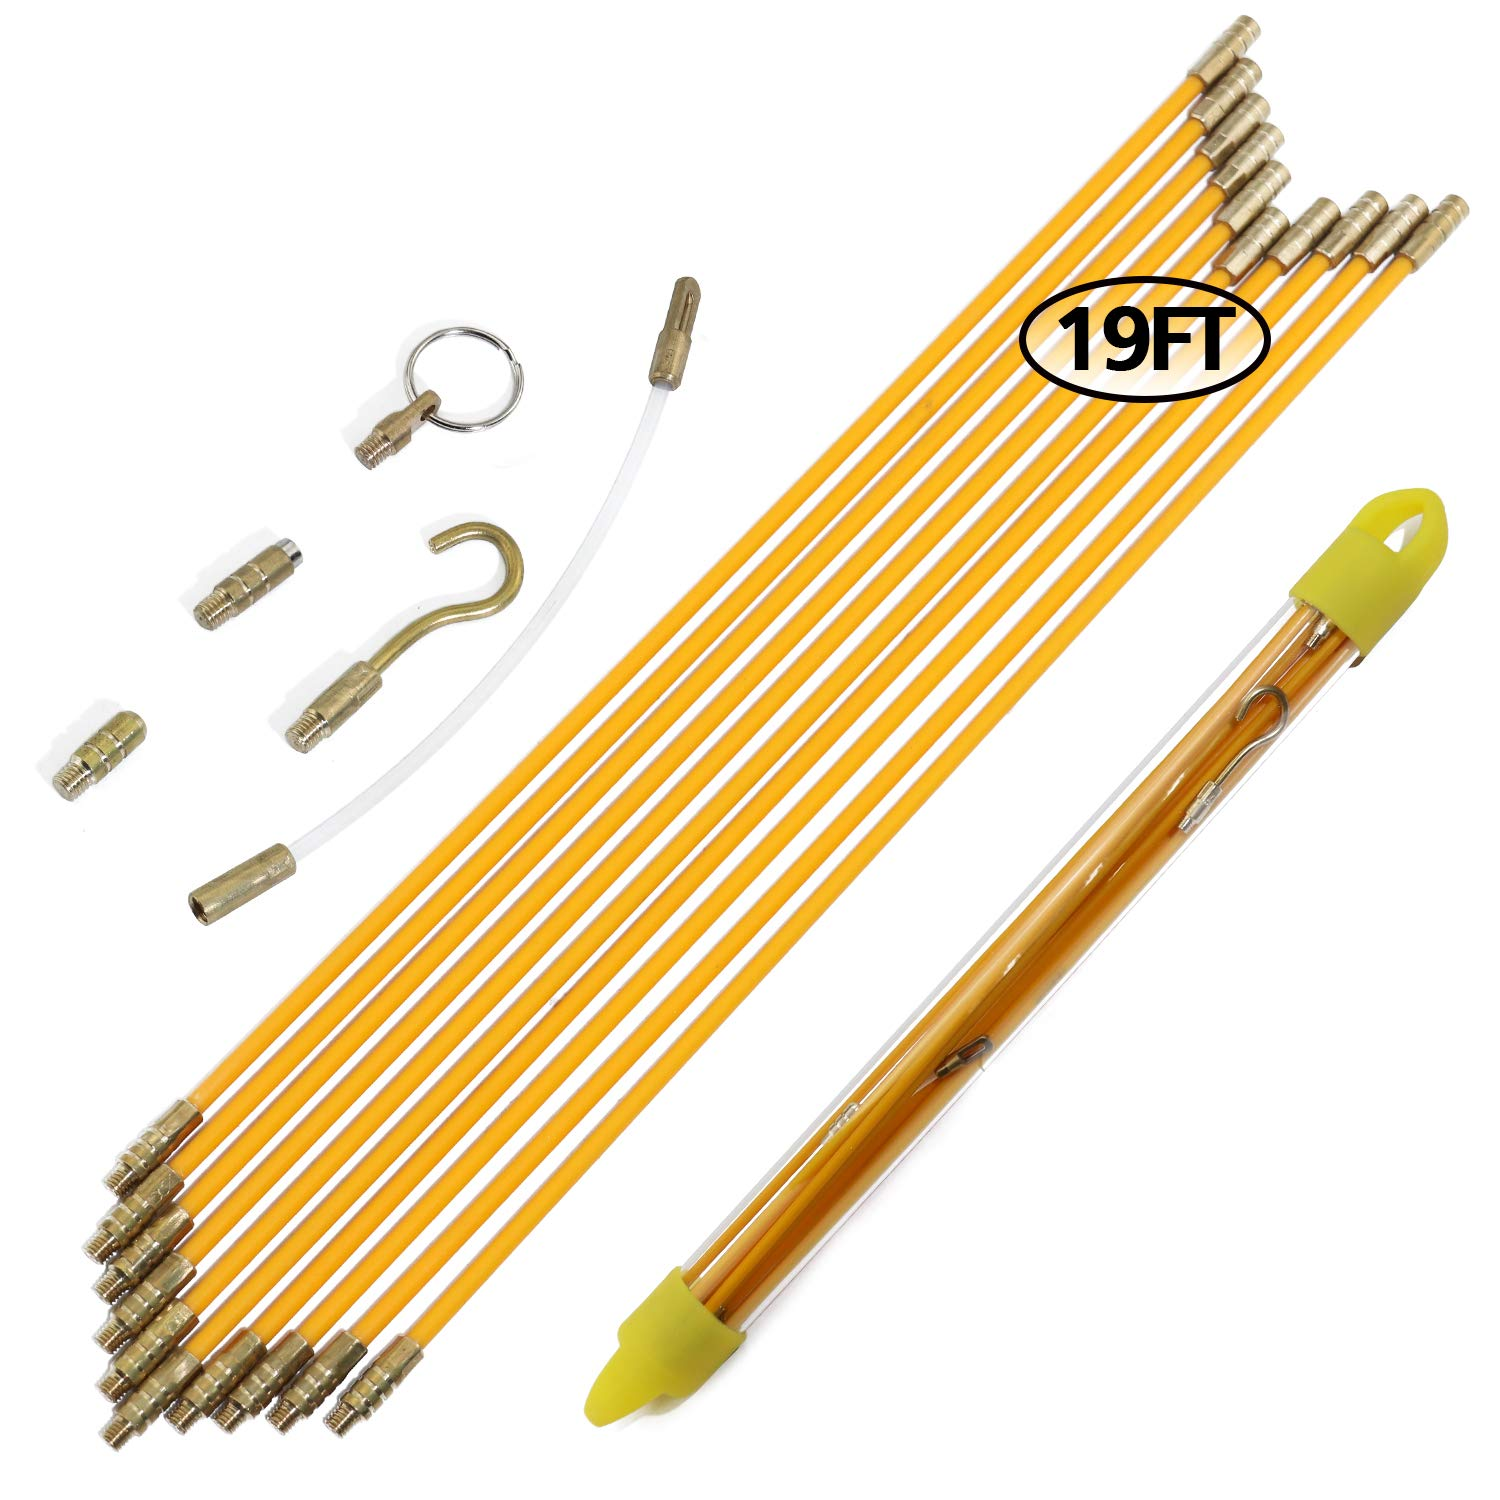 Boeray 11 Fiberglass Running Electrical Wire Cable Pulling Fish Tape kit with 5 different attachments in a Carrying Case